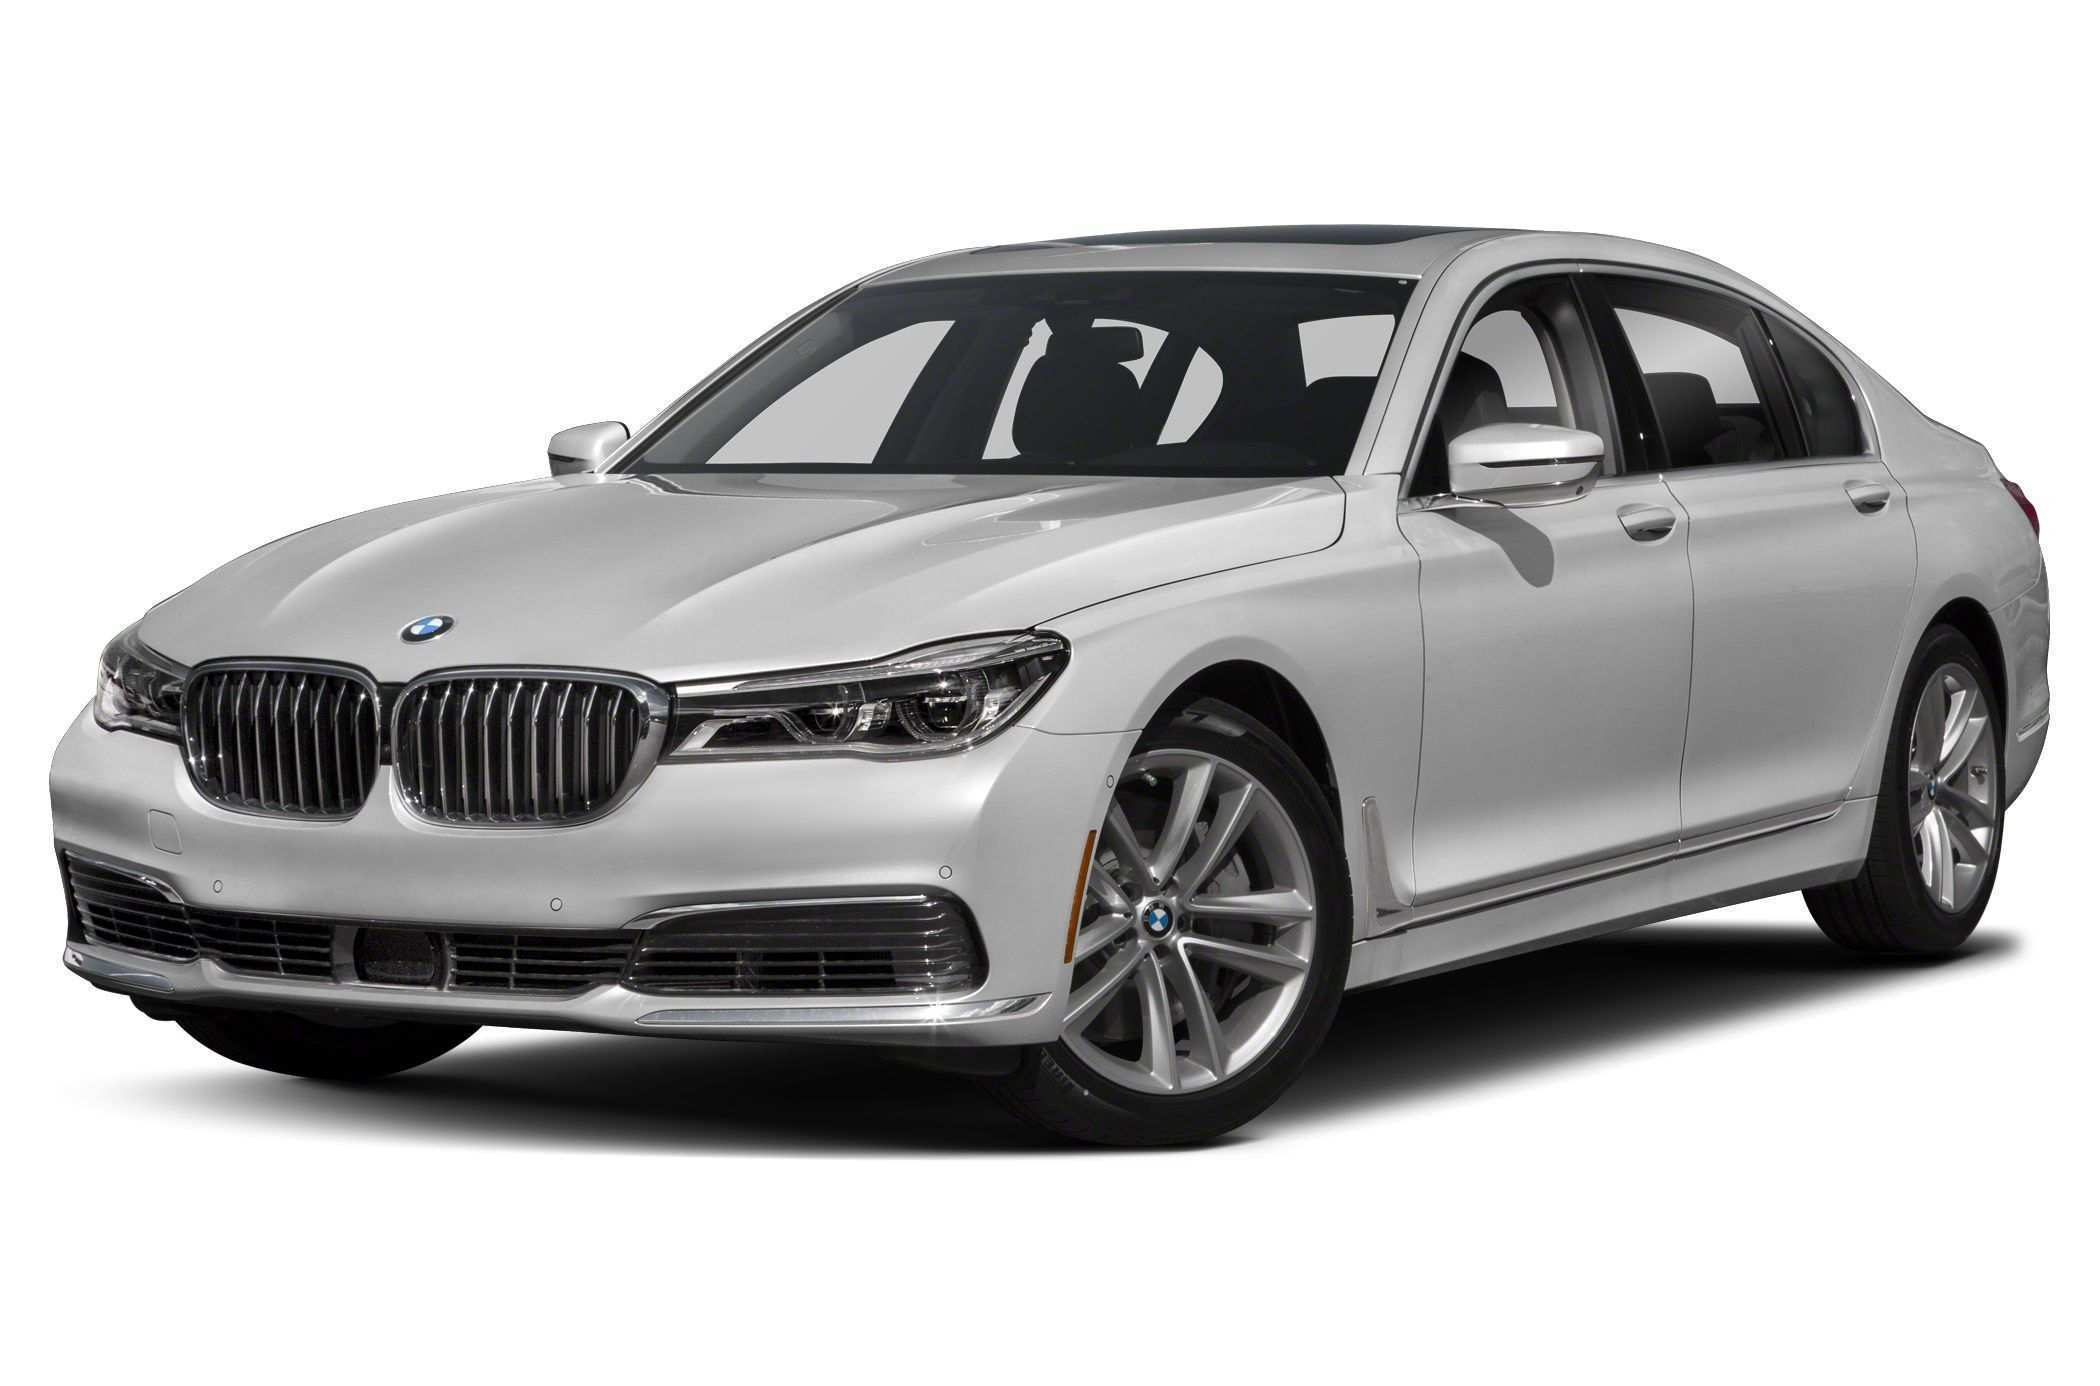 83 All New 2019 Bmw 7 Series Perfection New Ratings